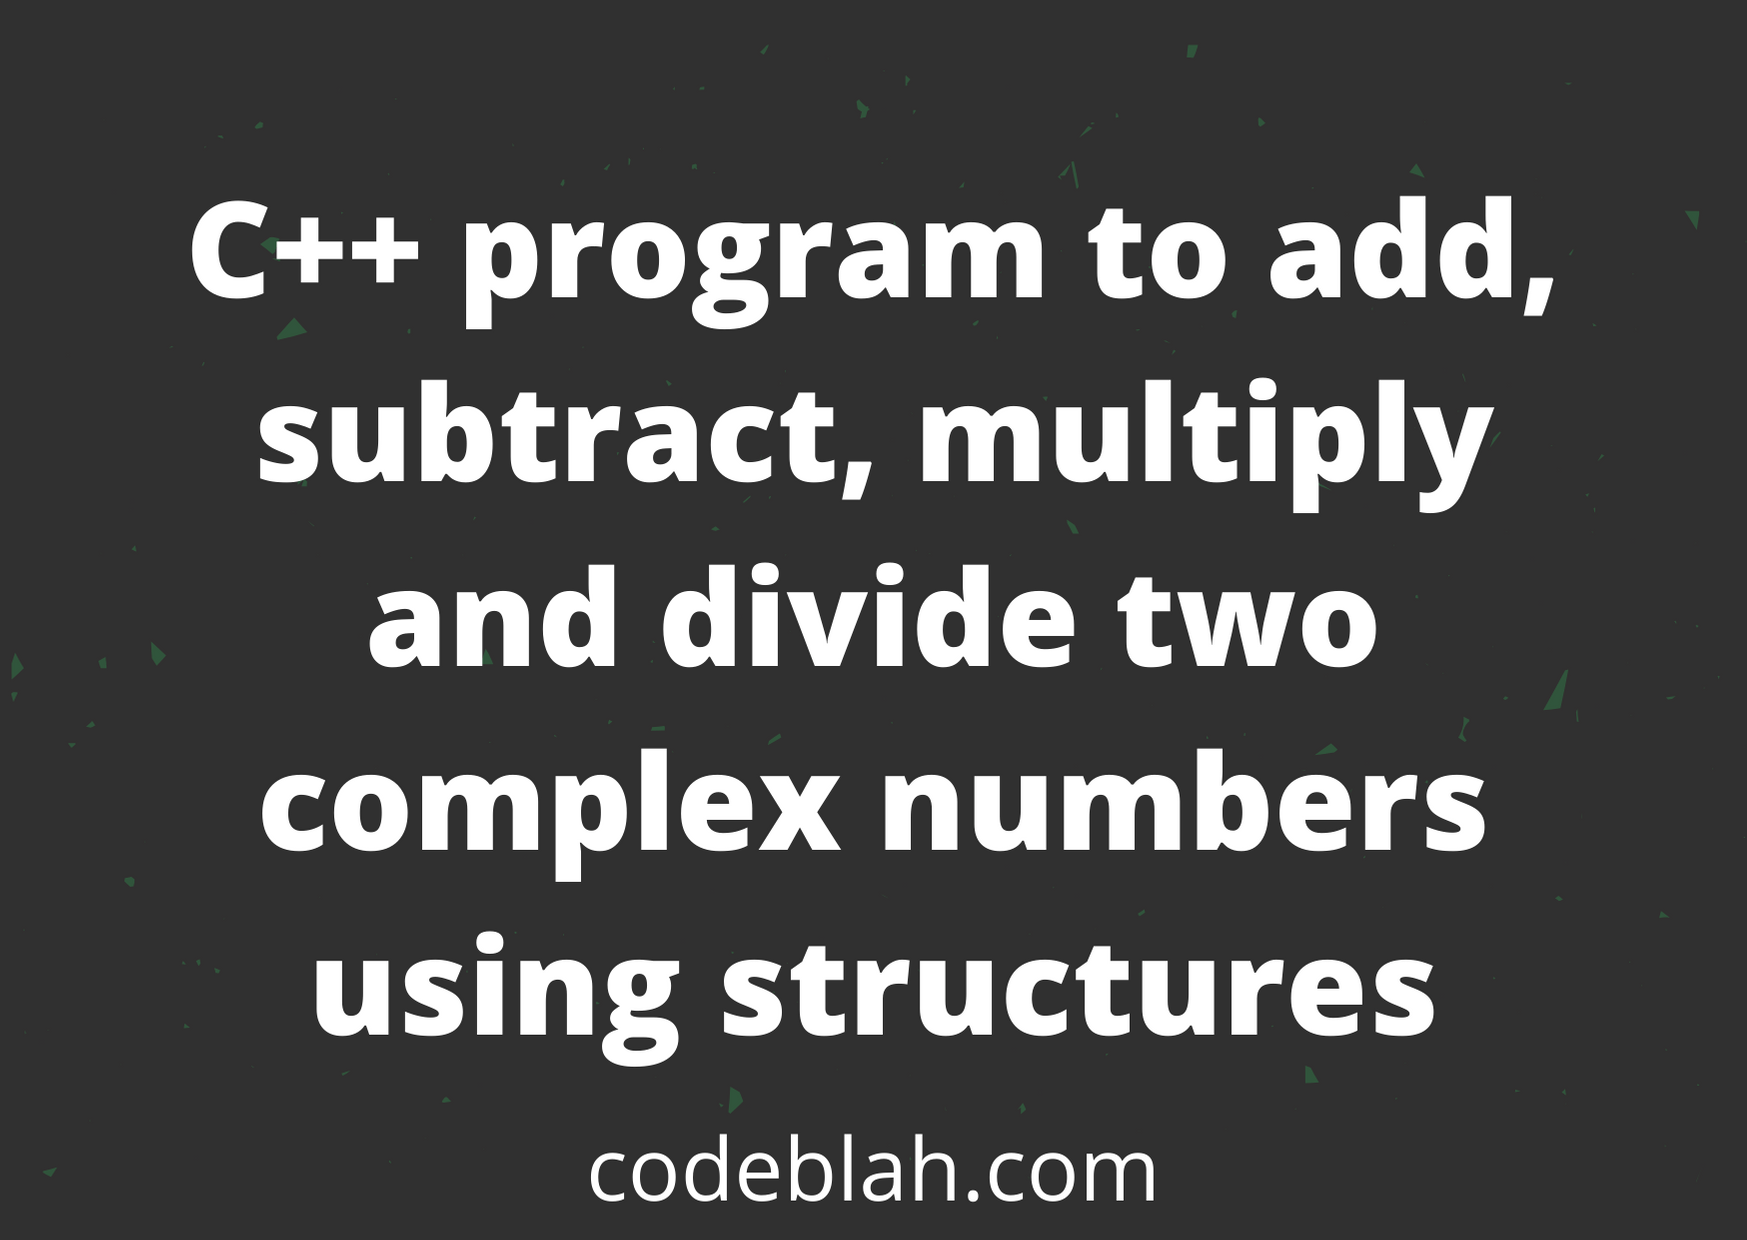 C++ program to add, subtract, multiply and divide two complex numbers using structures